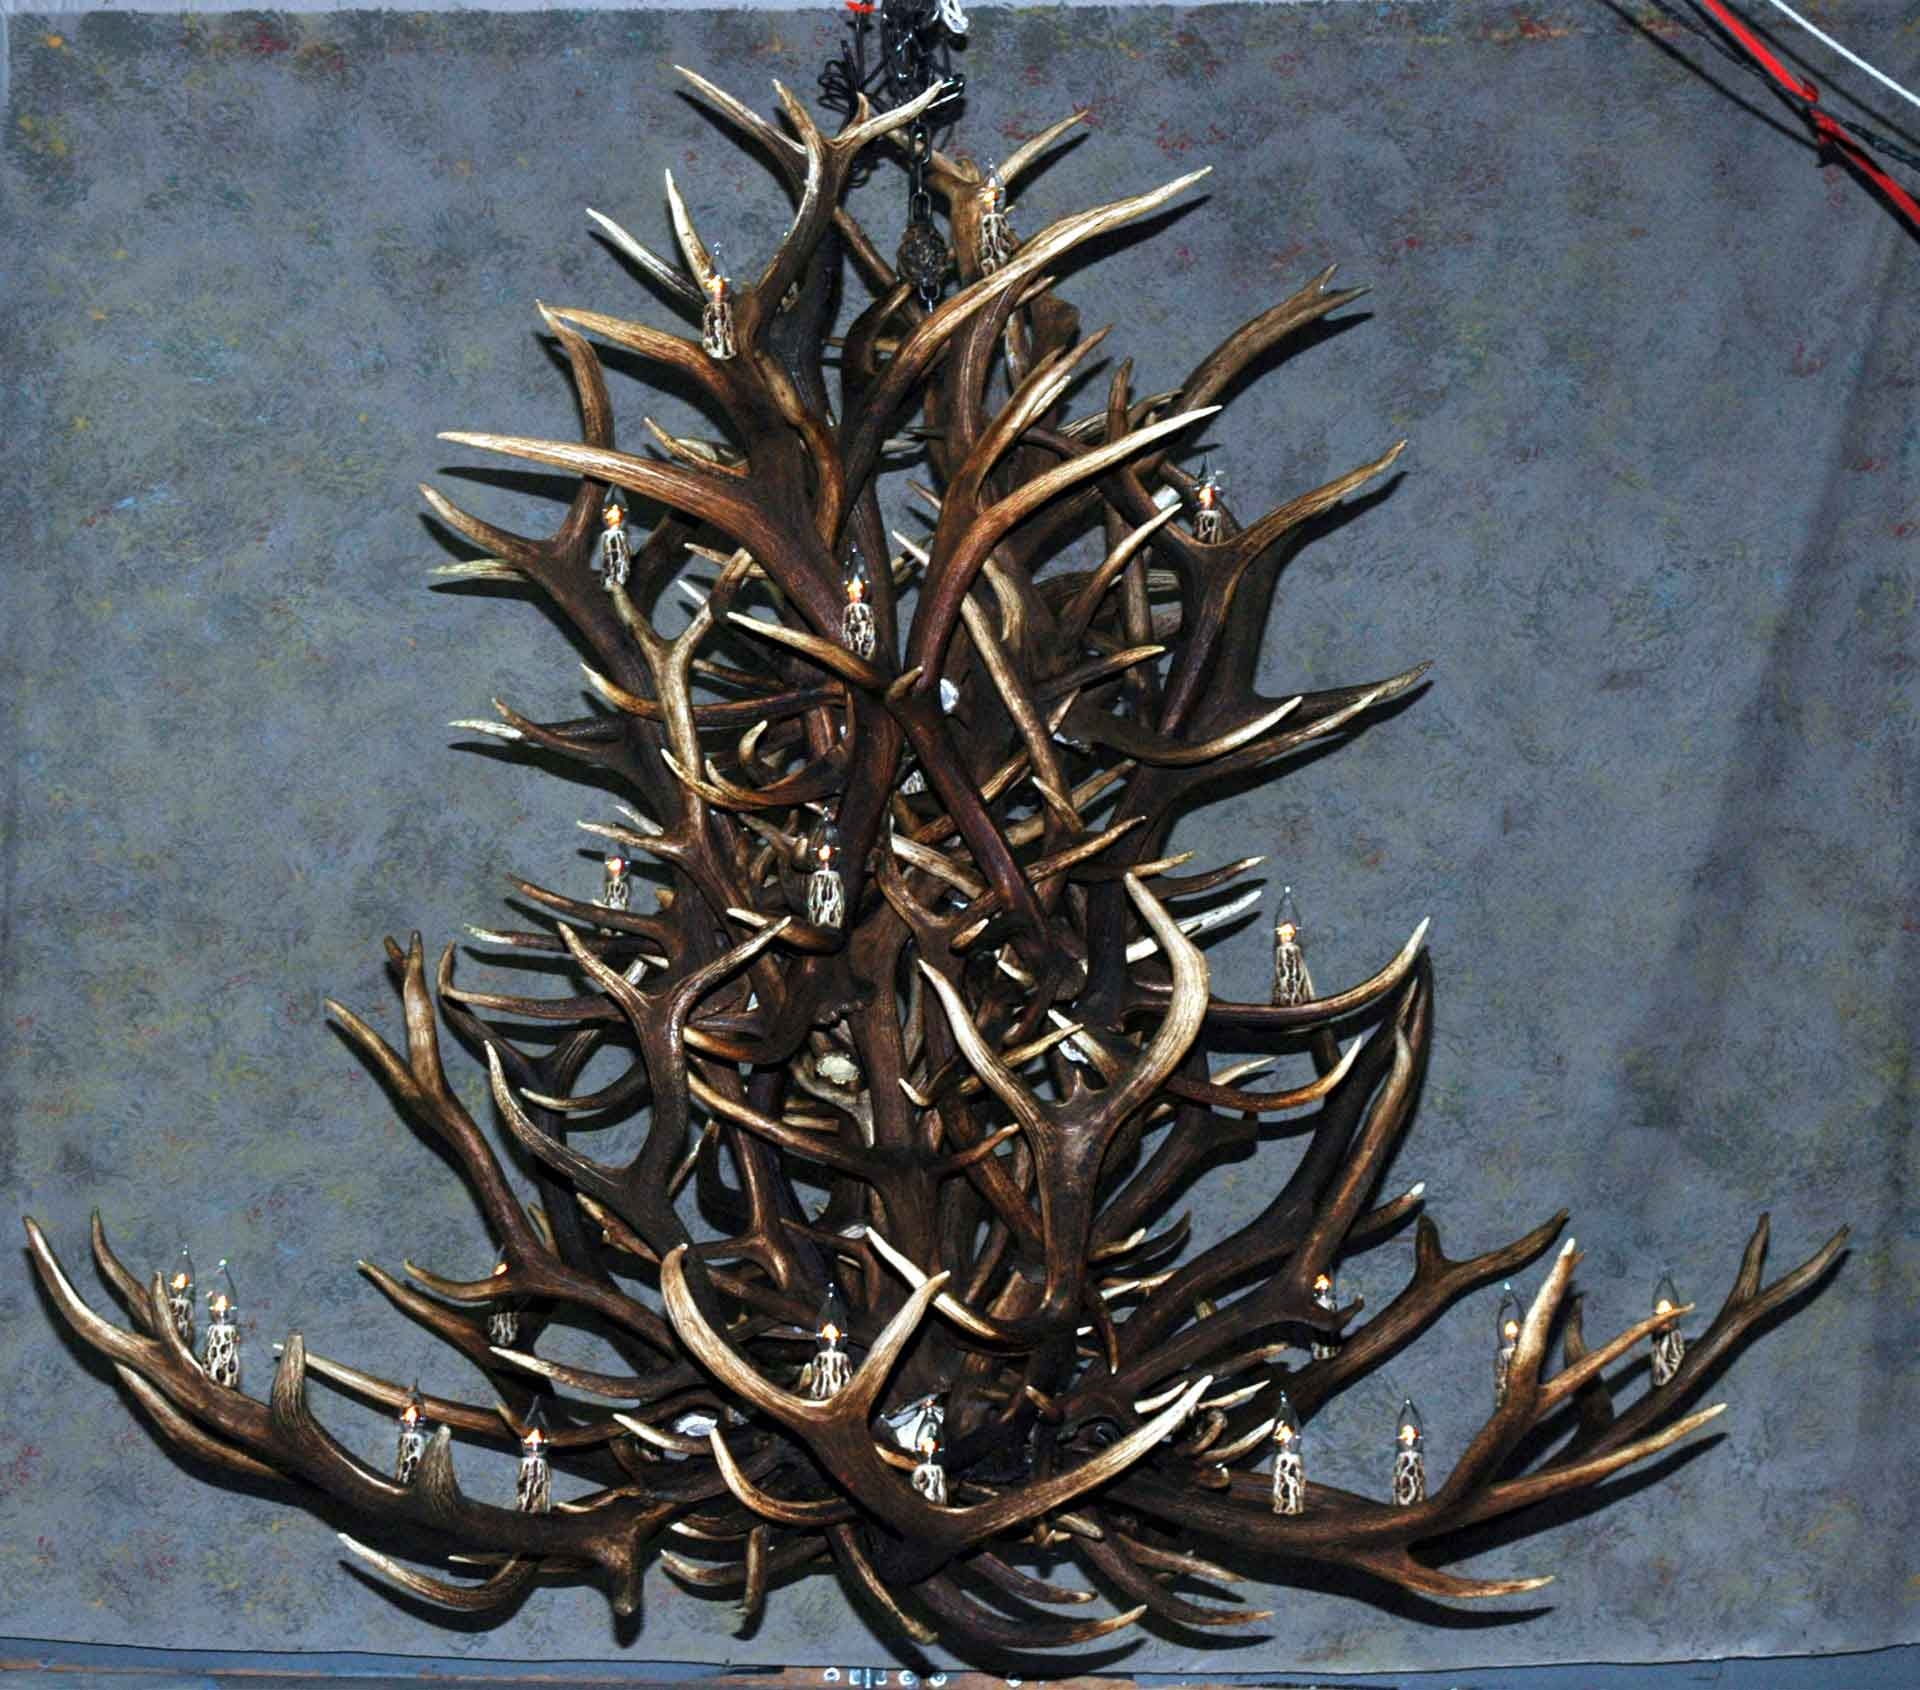 Antler Chandeliers Deer Antler Chandelier Deer Antler Lamps In Large Antler Chandelier (Image 2 of 15)